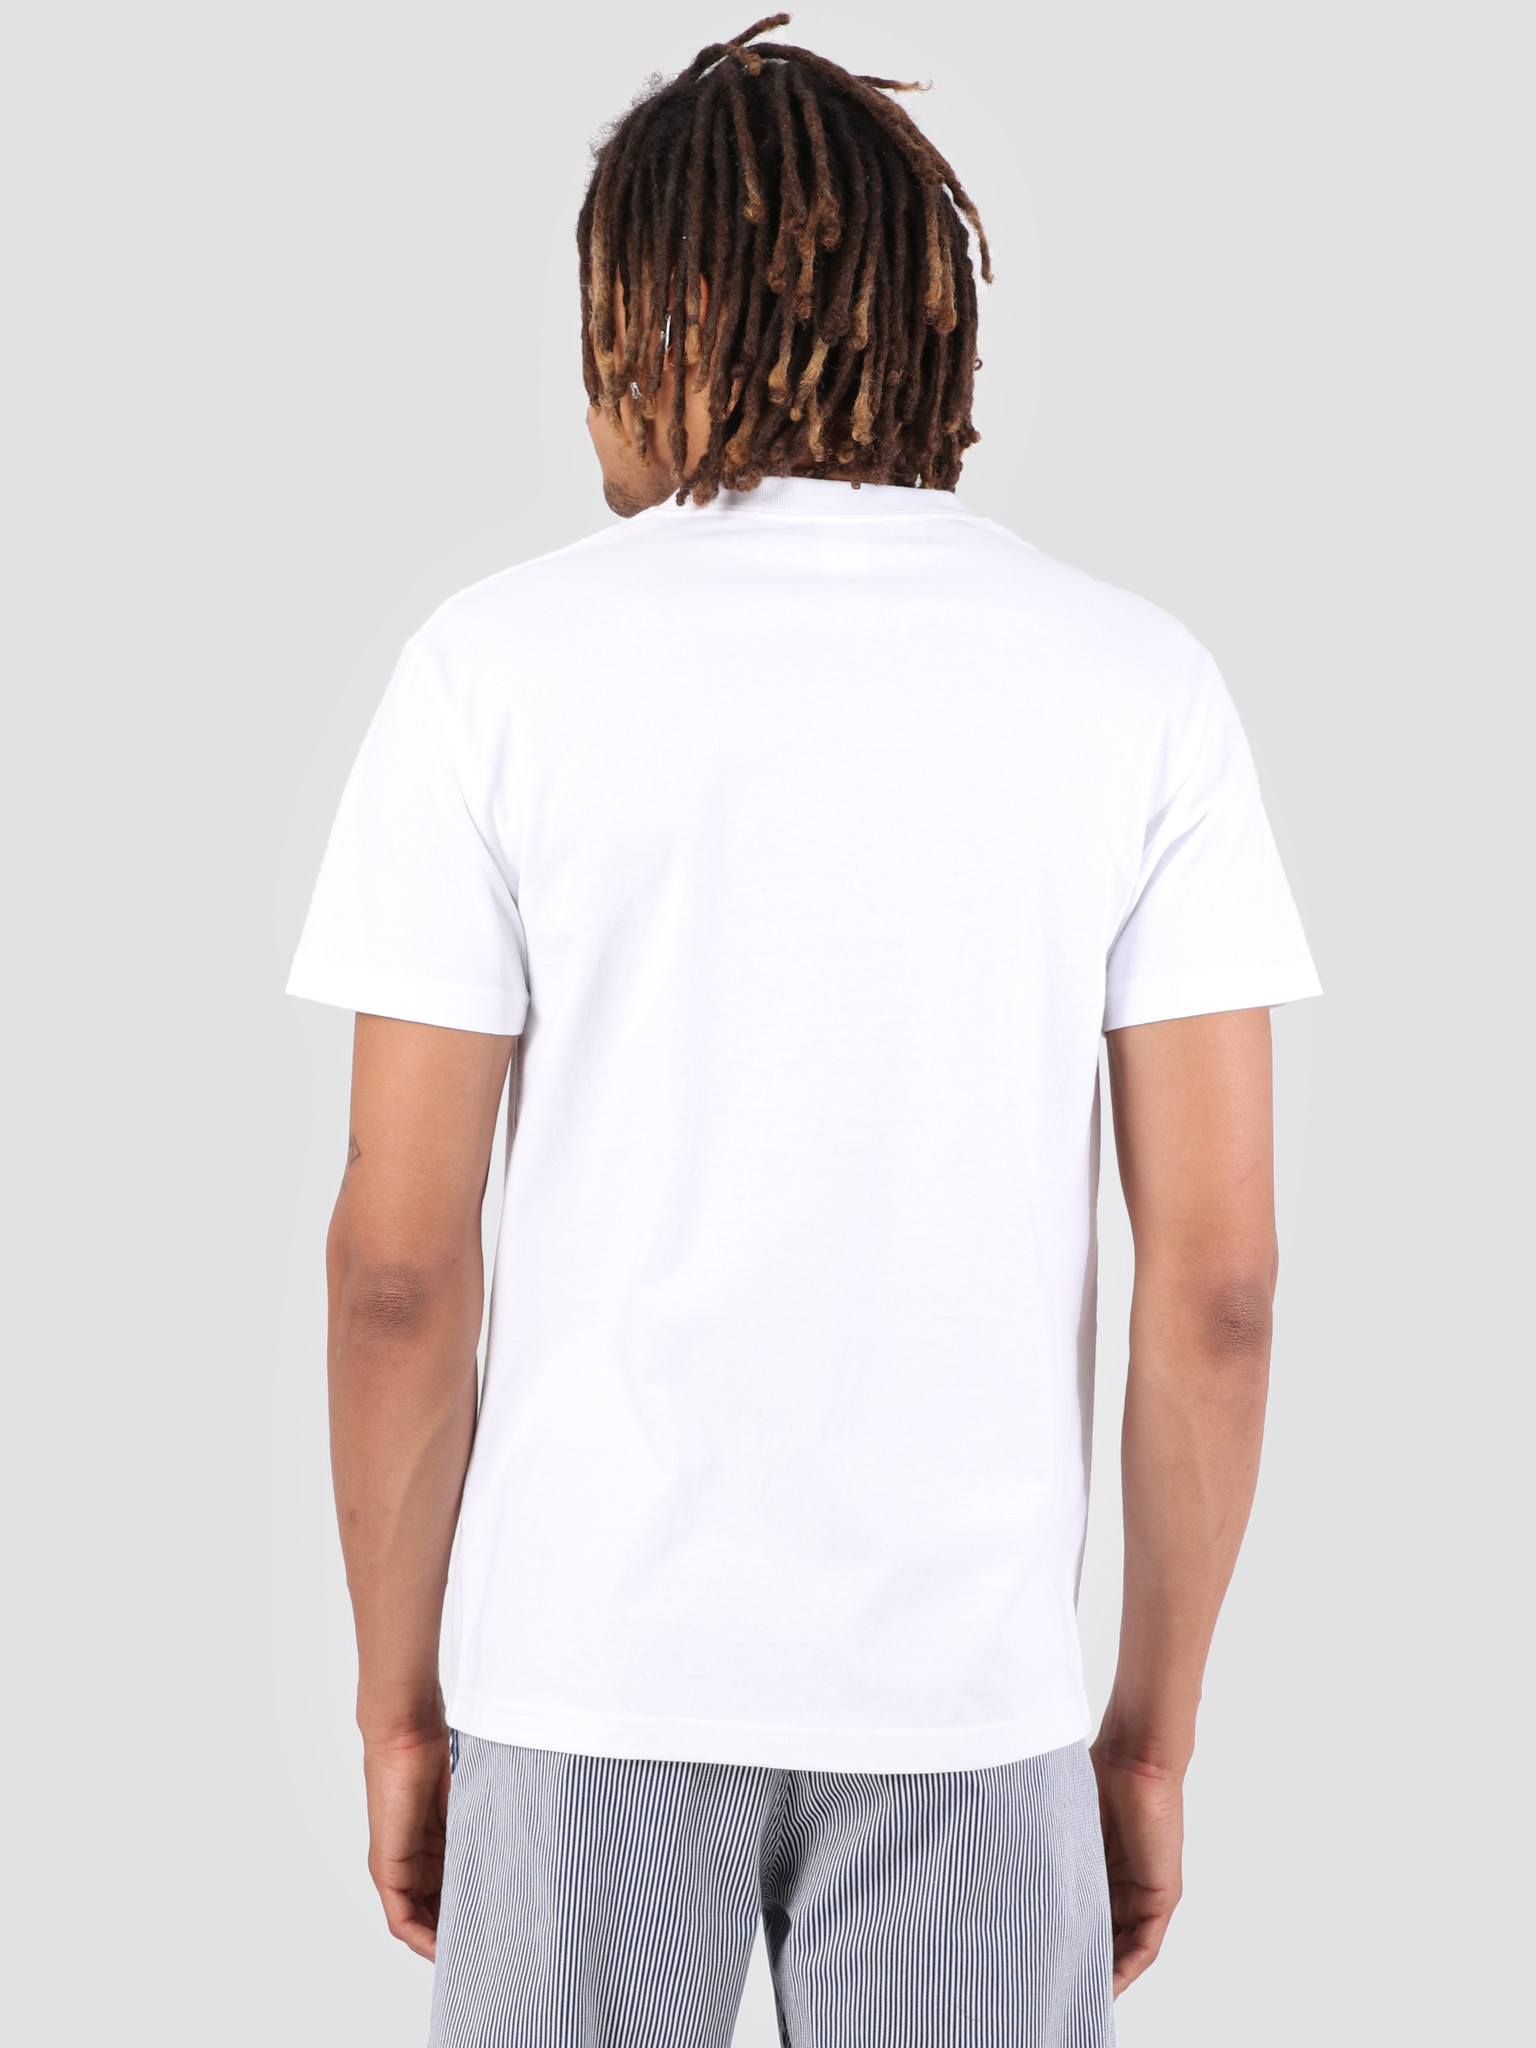 The Quiet Life The Quiet Life Yawn Plant T-Shirt White 19SPD1-1189-WHT